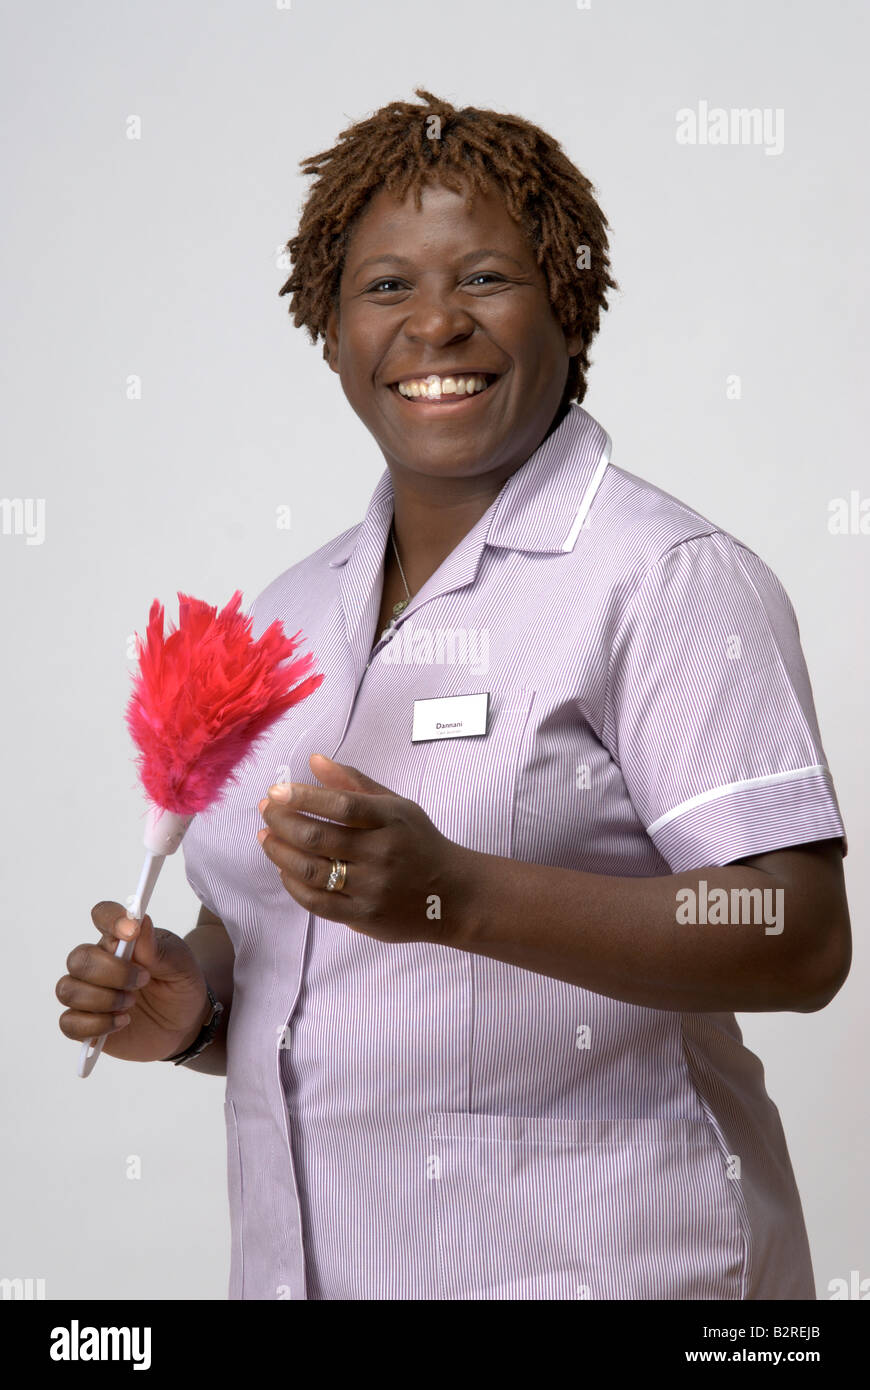 Black Afro Caribbean care assistant - Stock Image